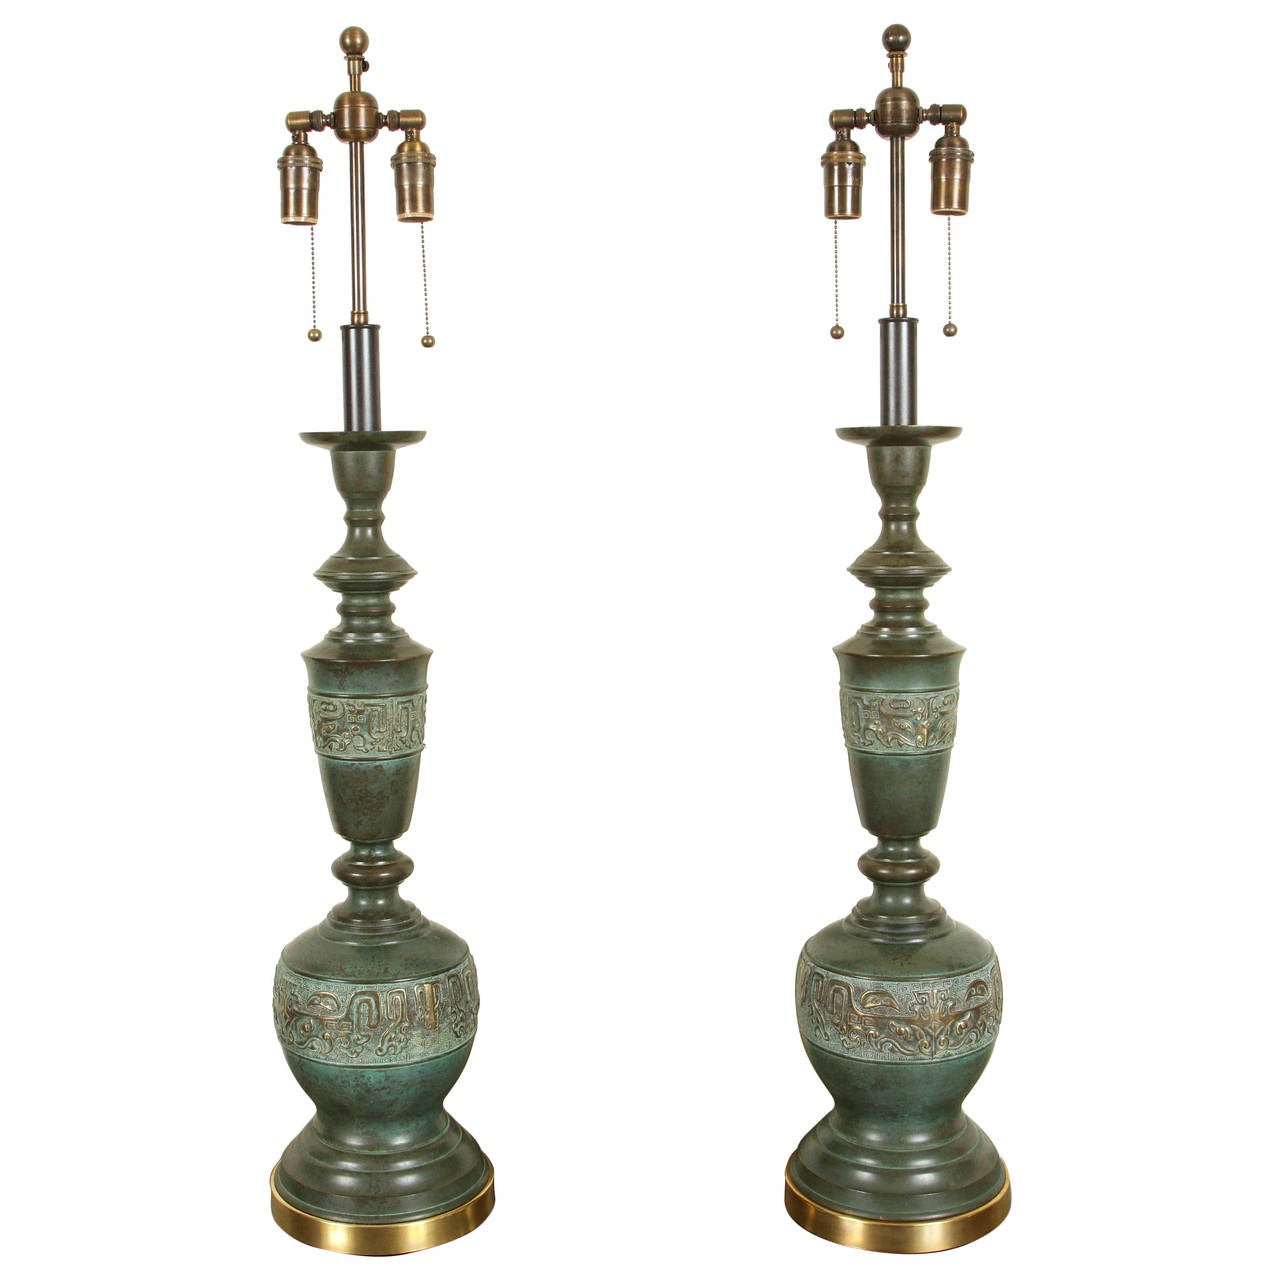 Pair of metal table lamps with a verdigris bronze finish by marbro pair of metal table lamps with a verdigris bronze finish by marbro 1 geotapseo Gallery